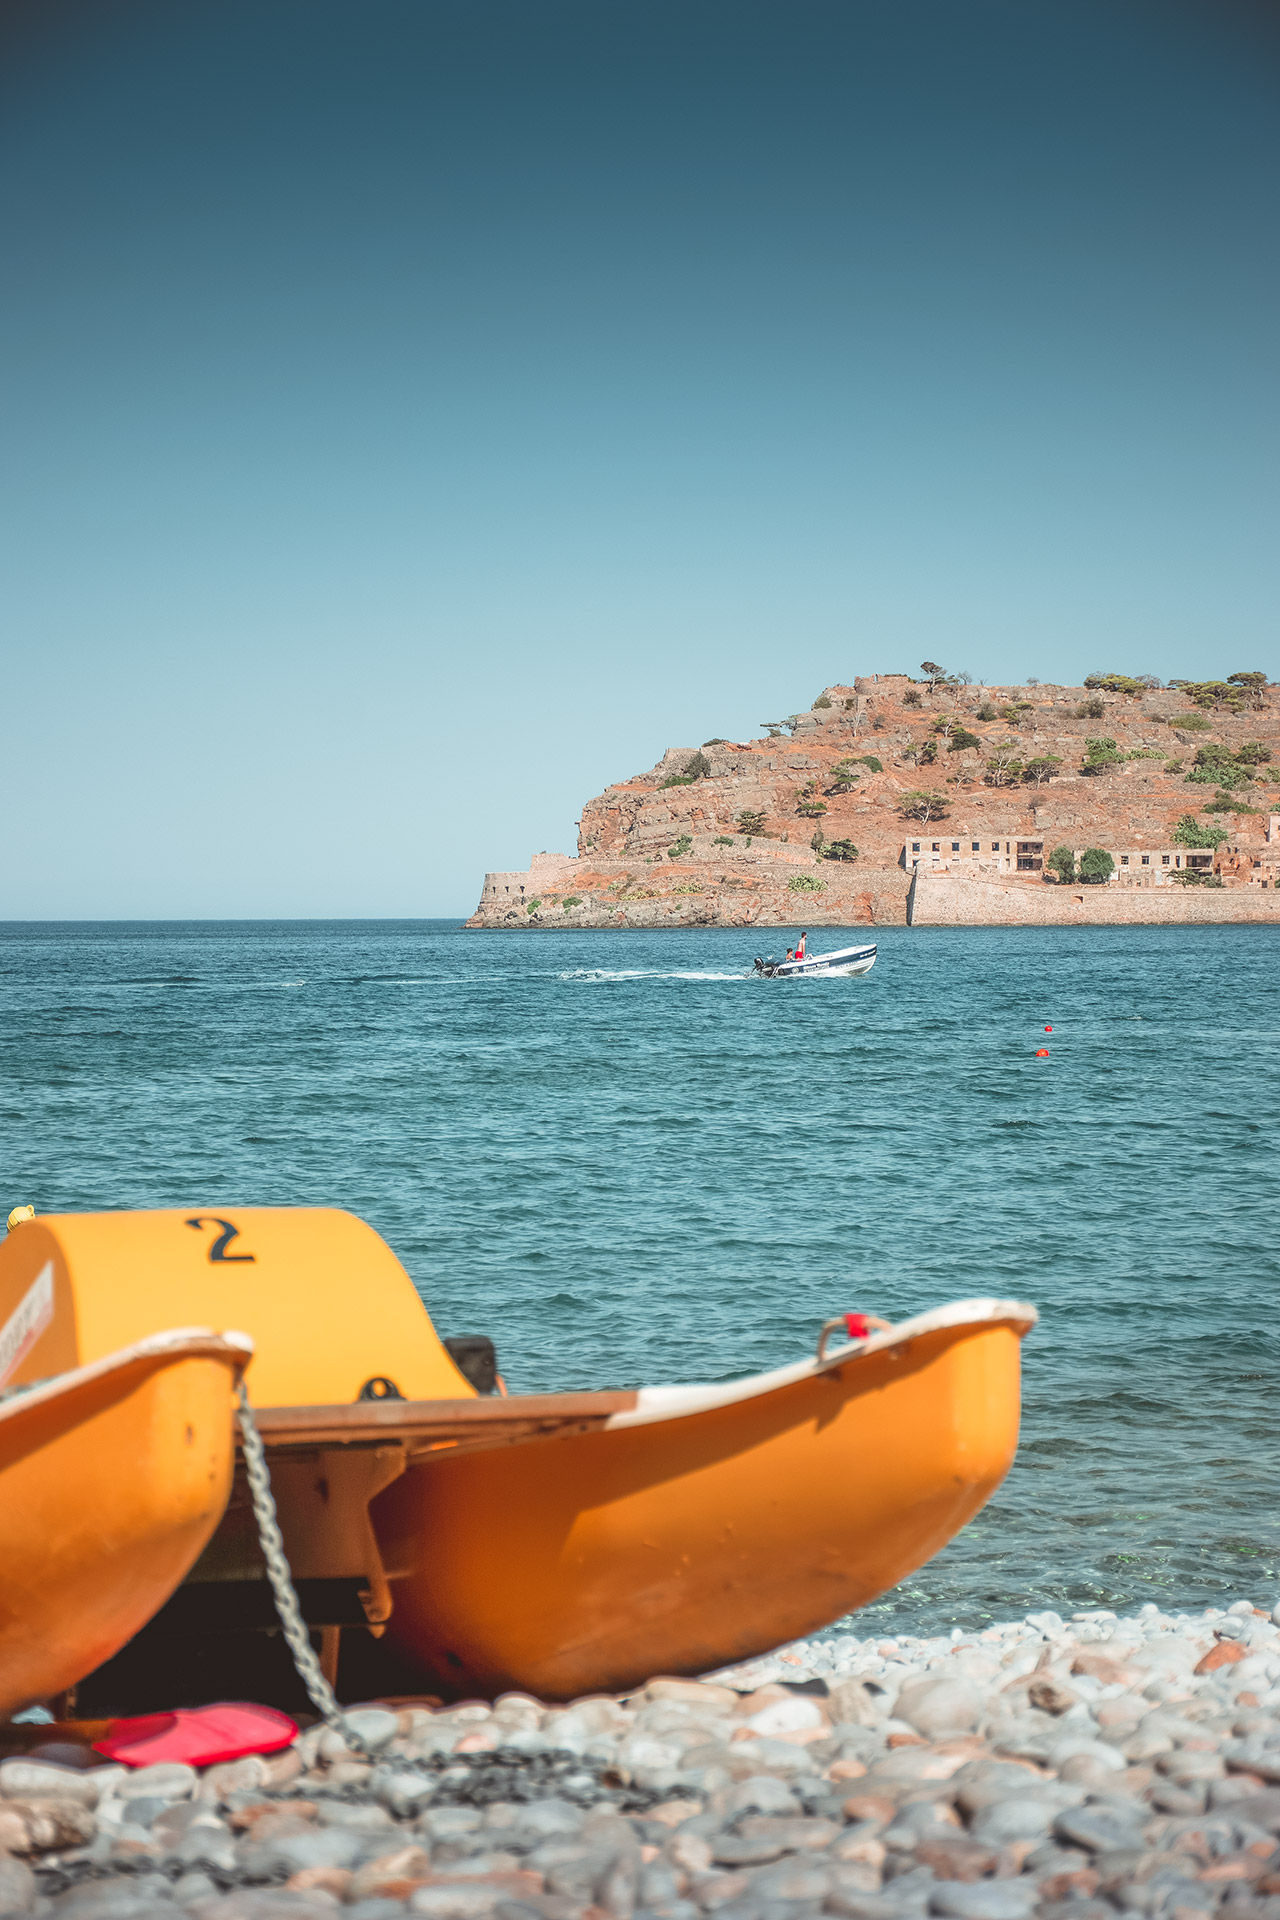 Crossing to Spinalonga takes only 7 minutes from Plaka